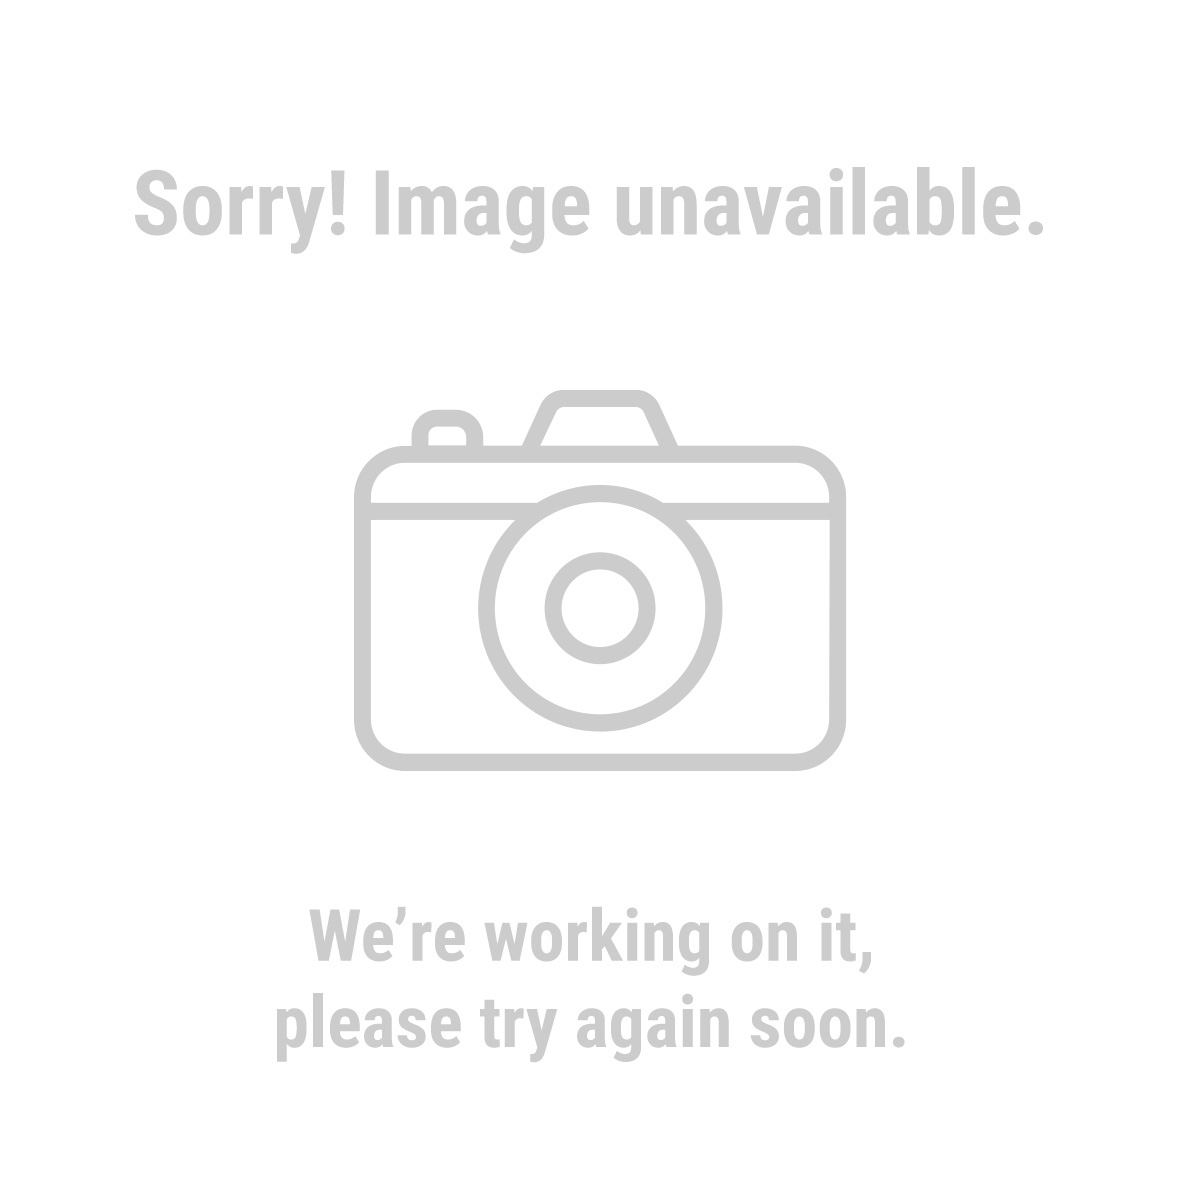 Predator Engines 60340 420 cc OHV Horizontal Shaft Gas Engine